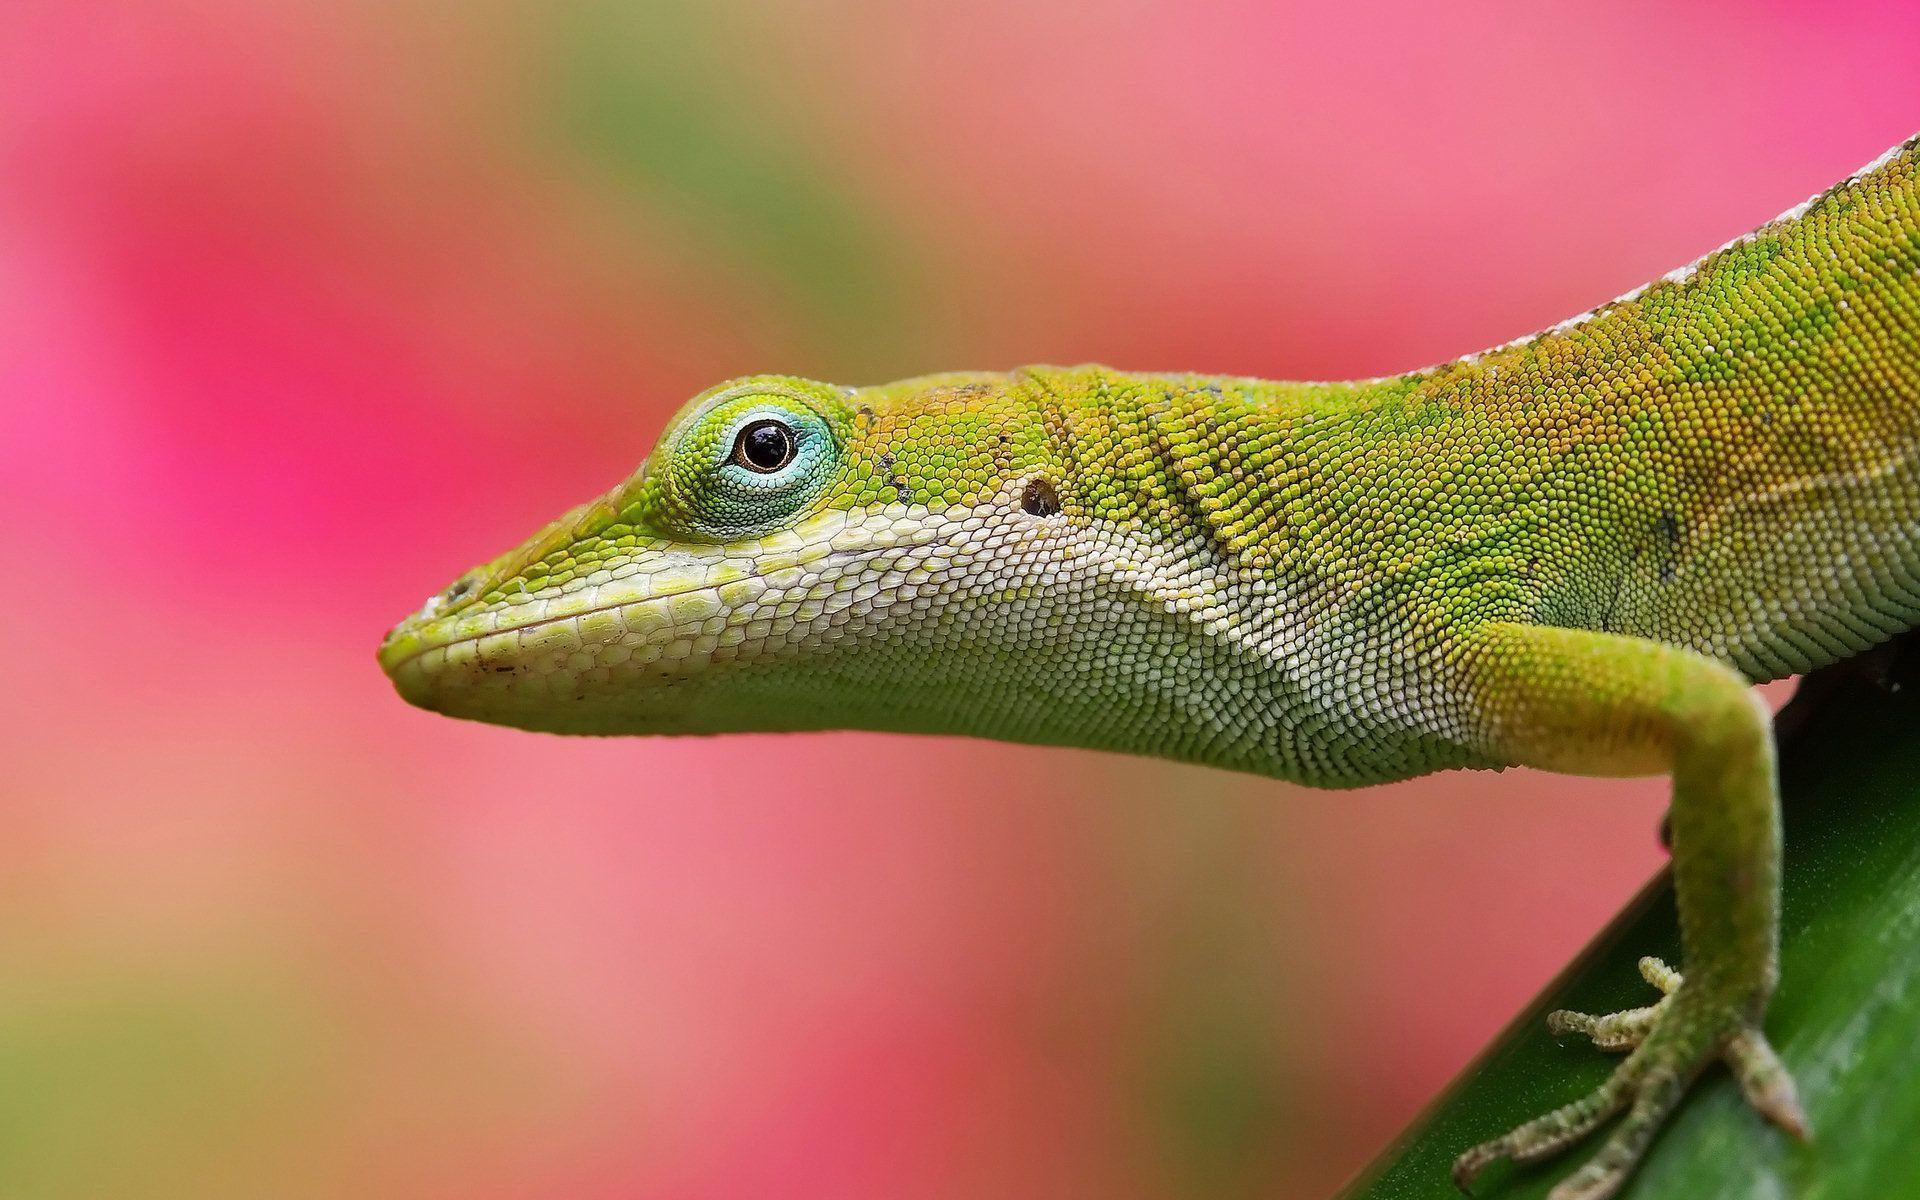 Colorful Lizard Pink Background | Paravu.com | HD Wallpaper and ...